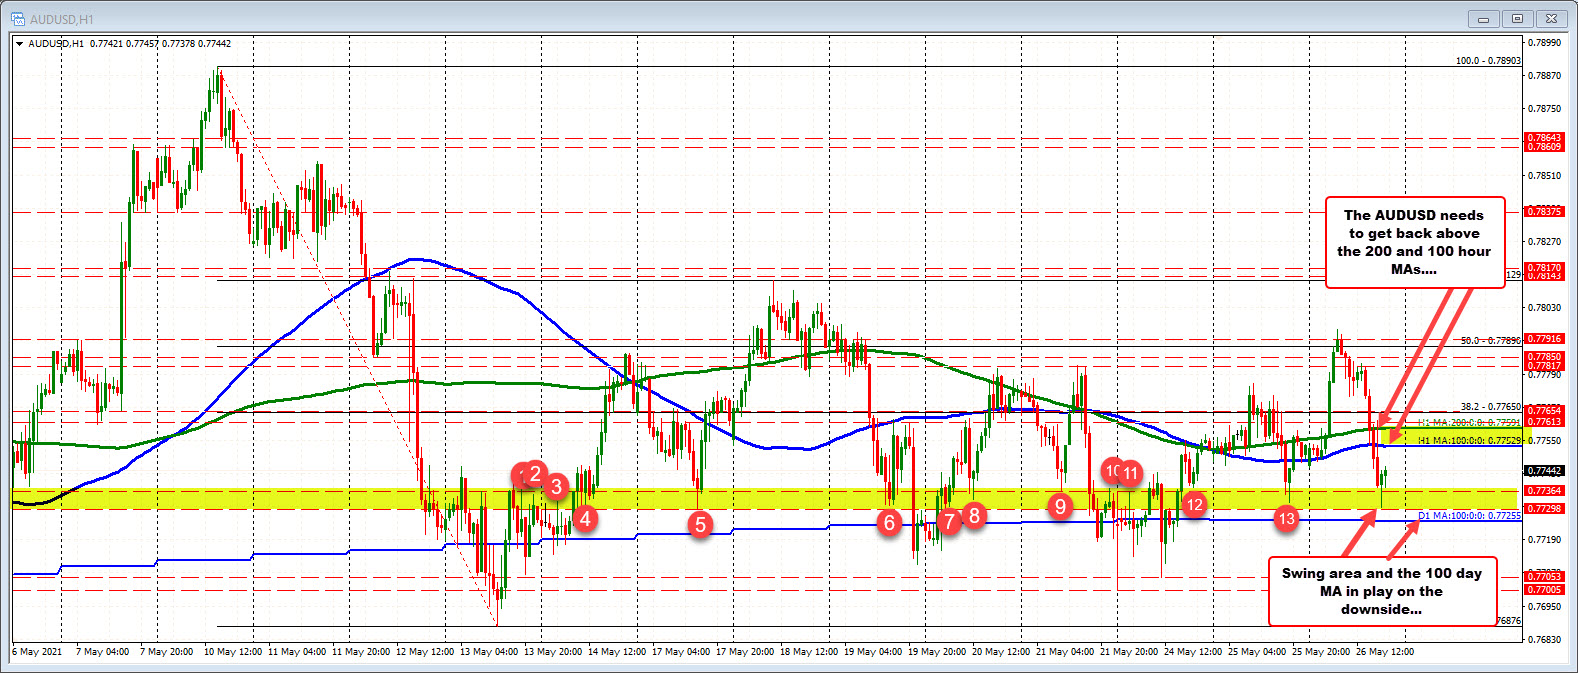 AUDUSD stalls the fall near the swing area and 100 day MA